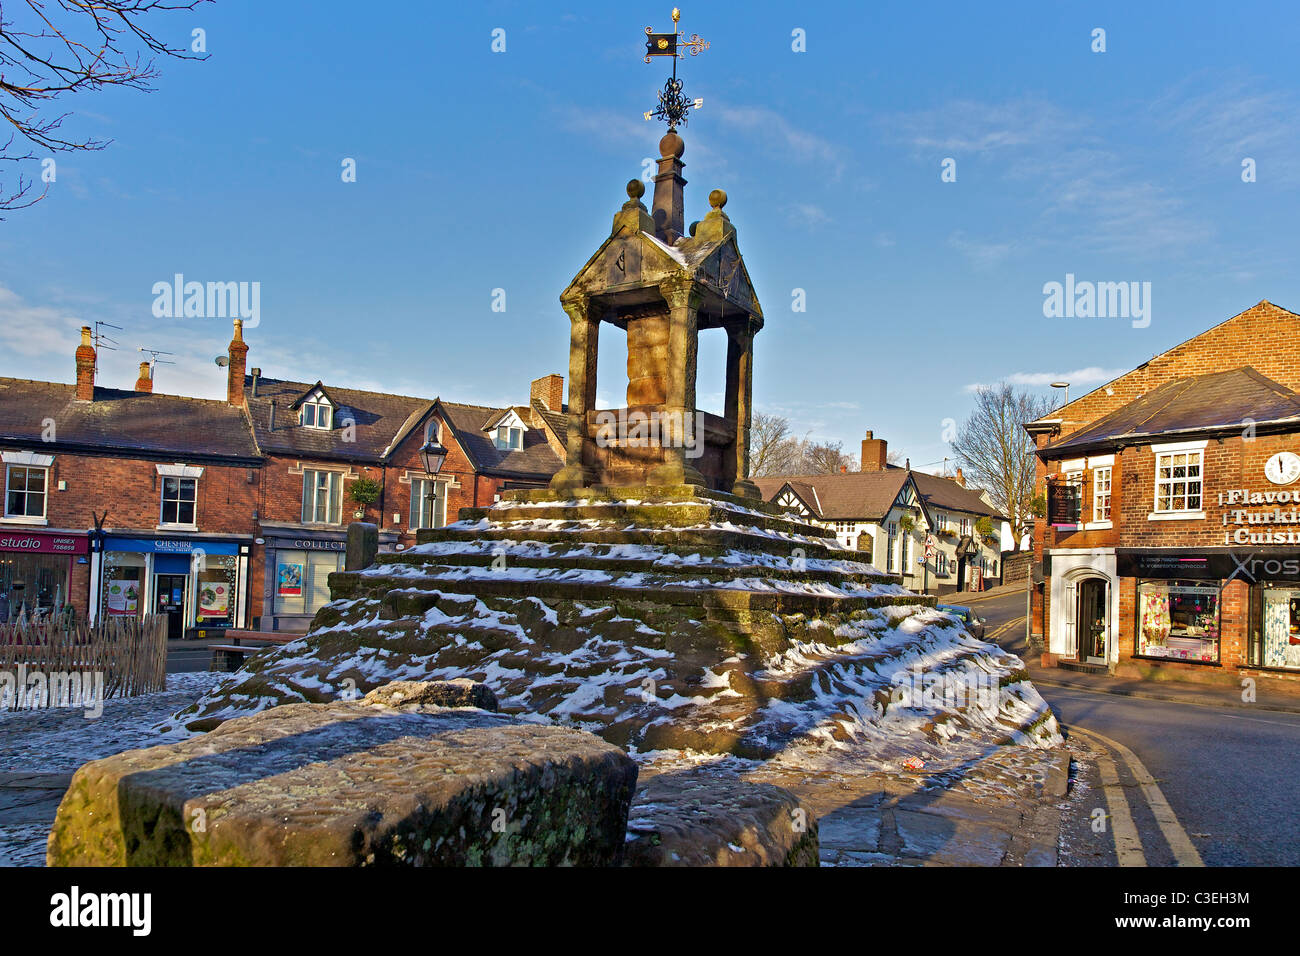 Lymm cross in the centre of Lymm village Cheshire in winter with snow. - Stock Image